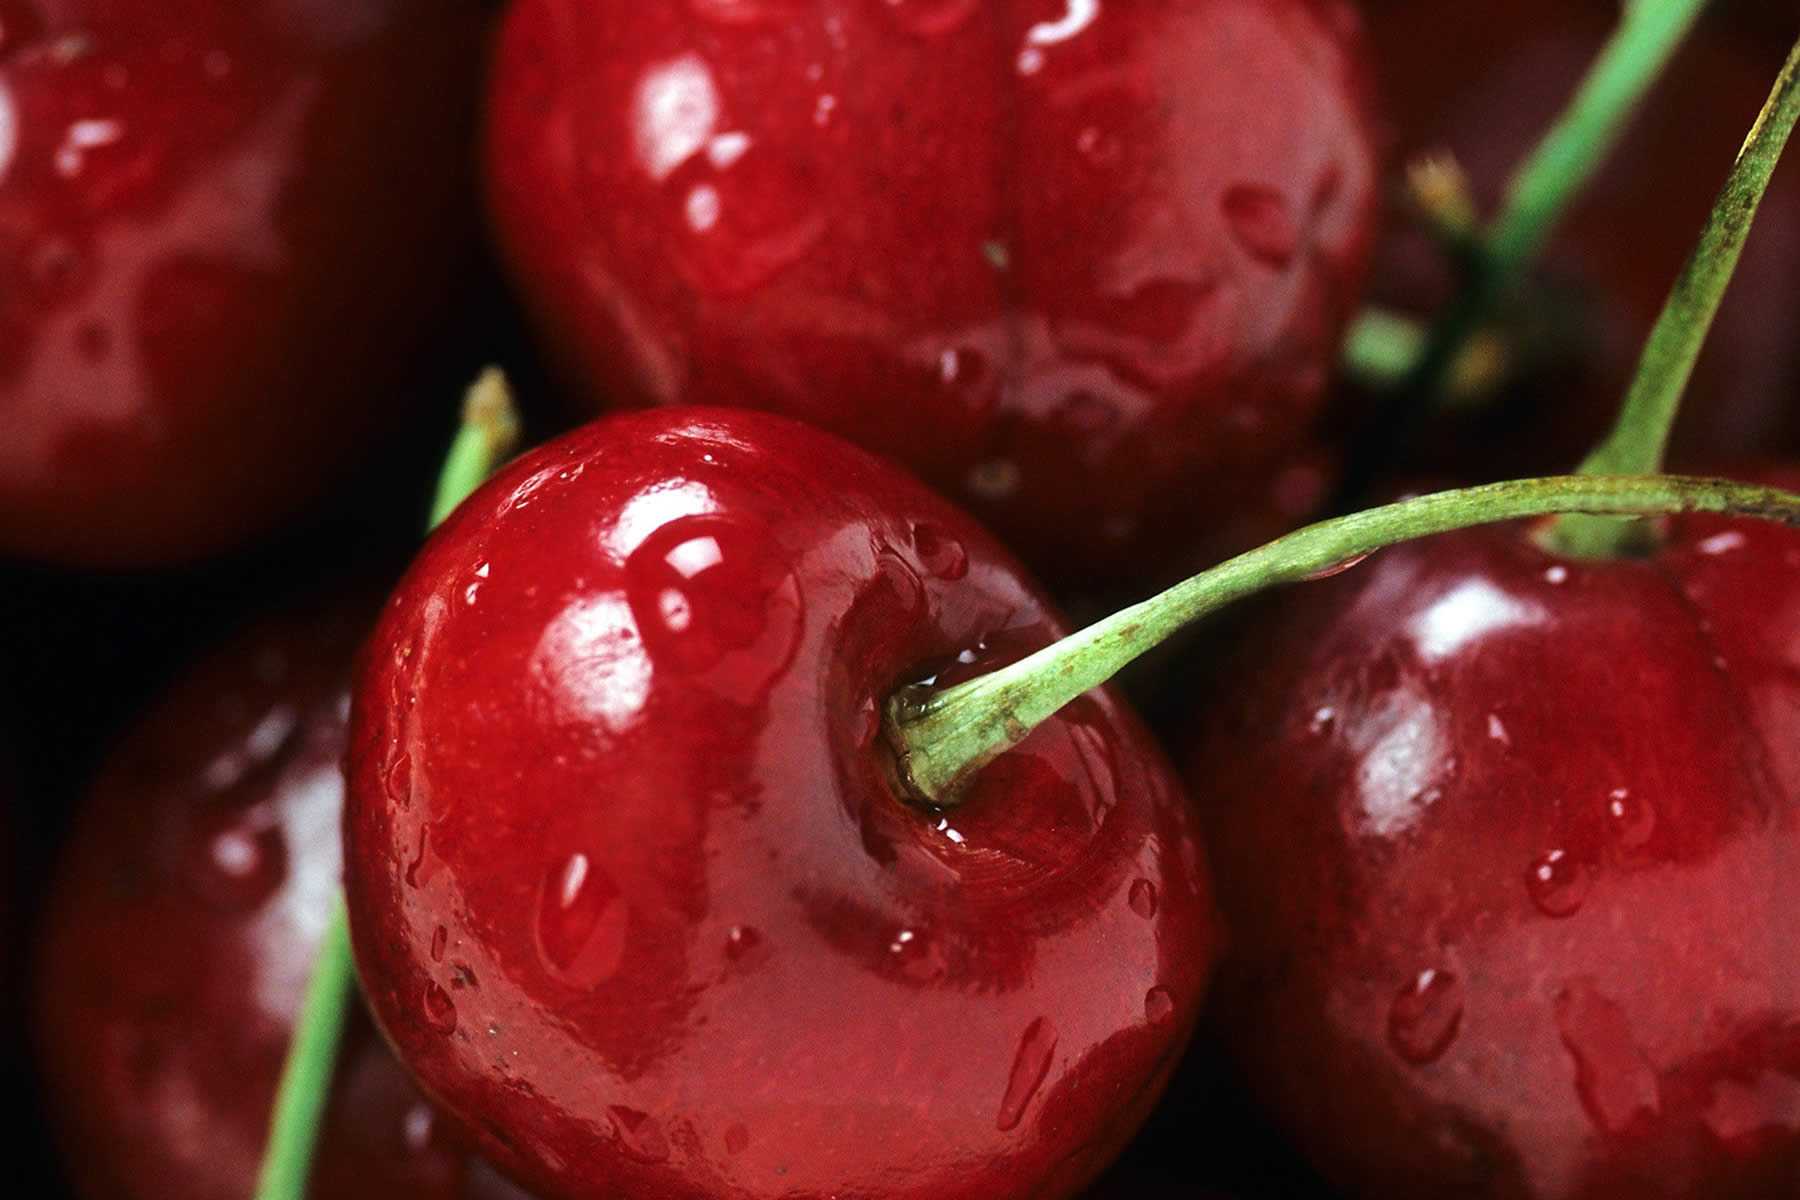 Cherry closeup